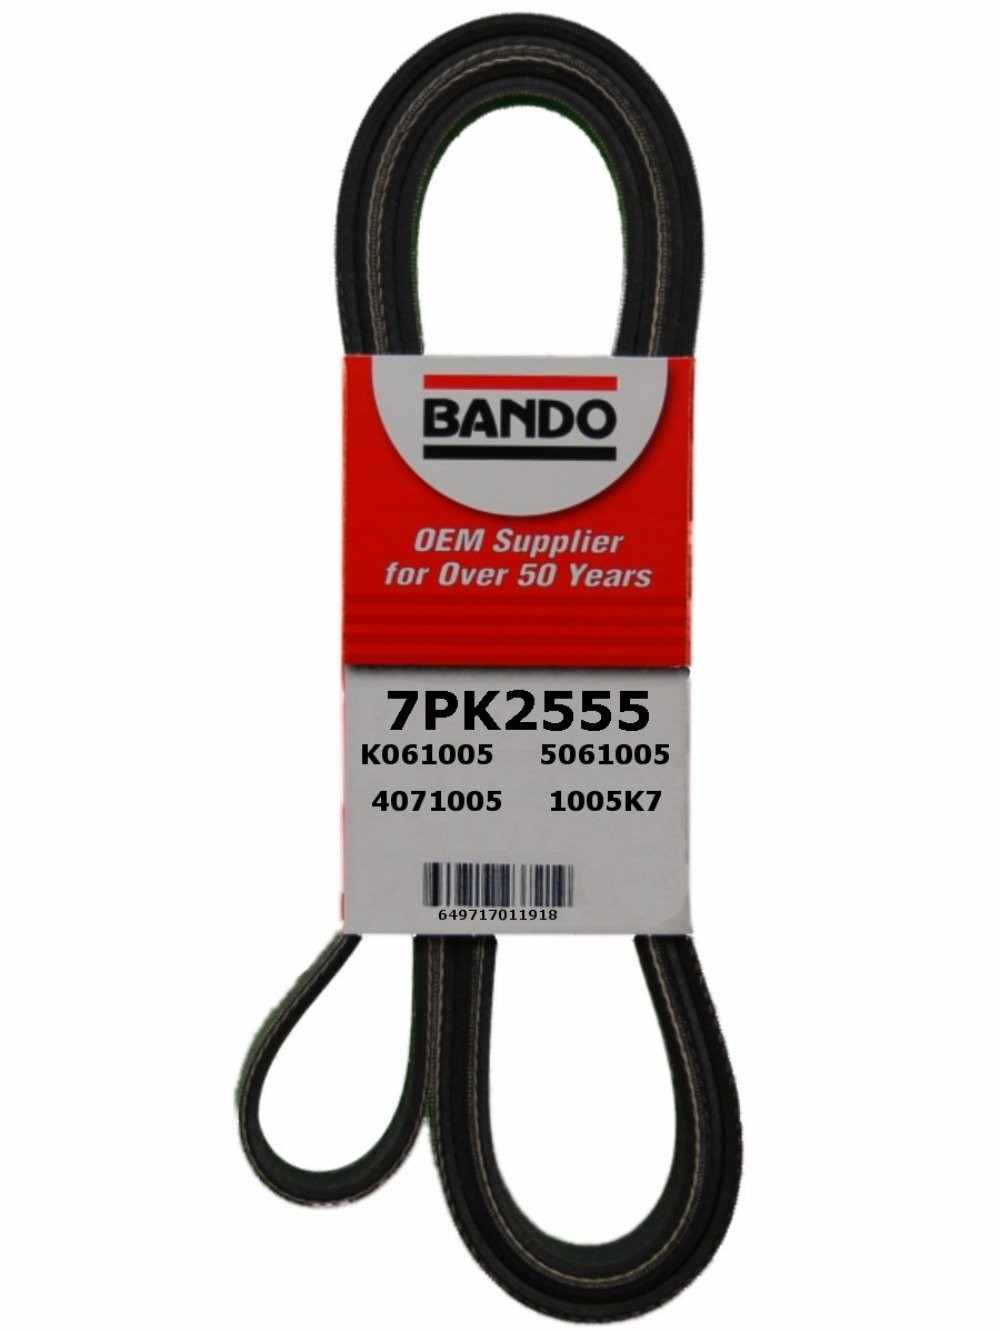 BANDO - Rib Ace Precision Engineered V-Ribbed Belt (Fan, Alternator, Power Steering and Air Conditioning) - BWO 7PK2555